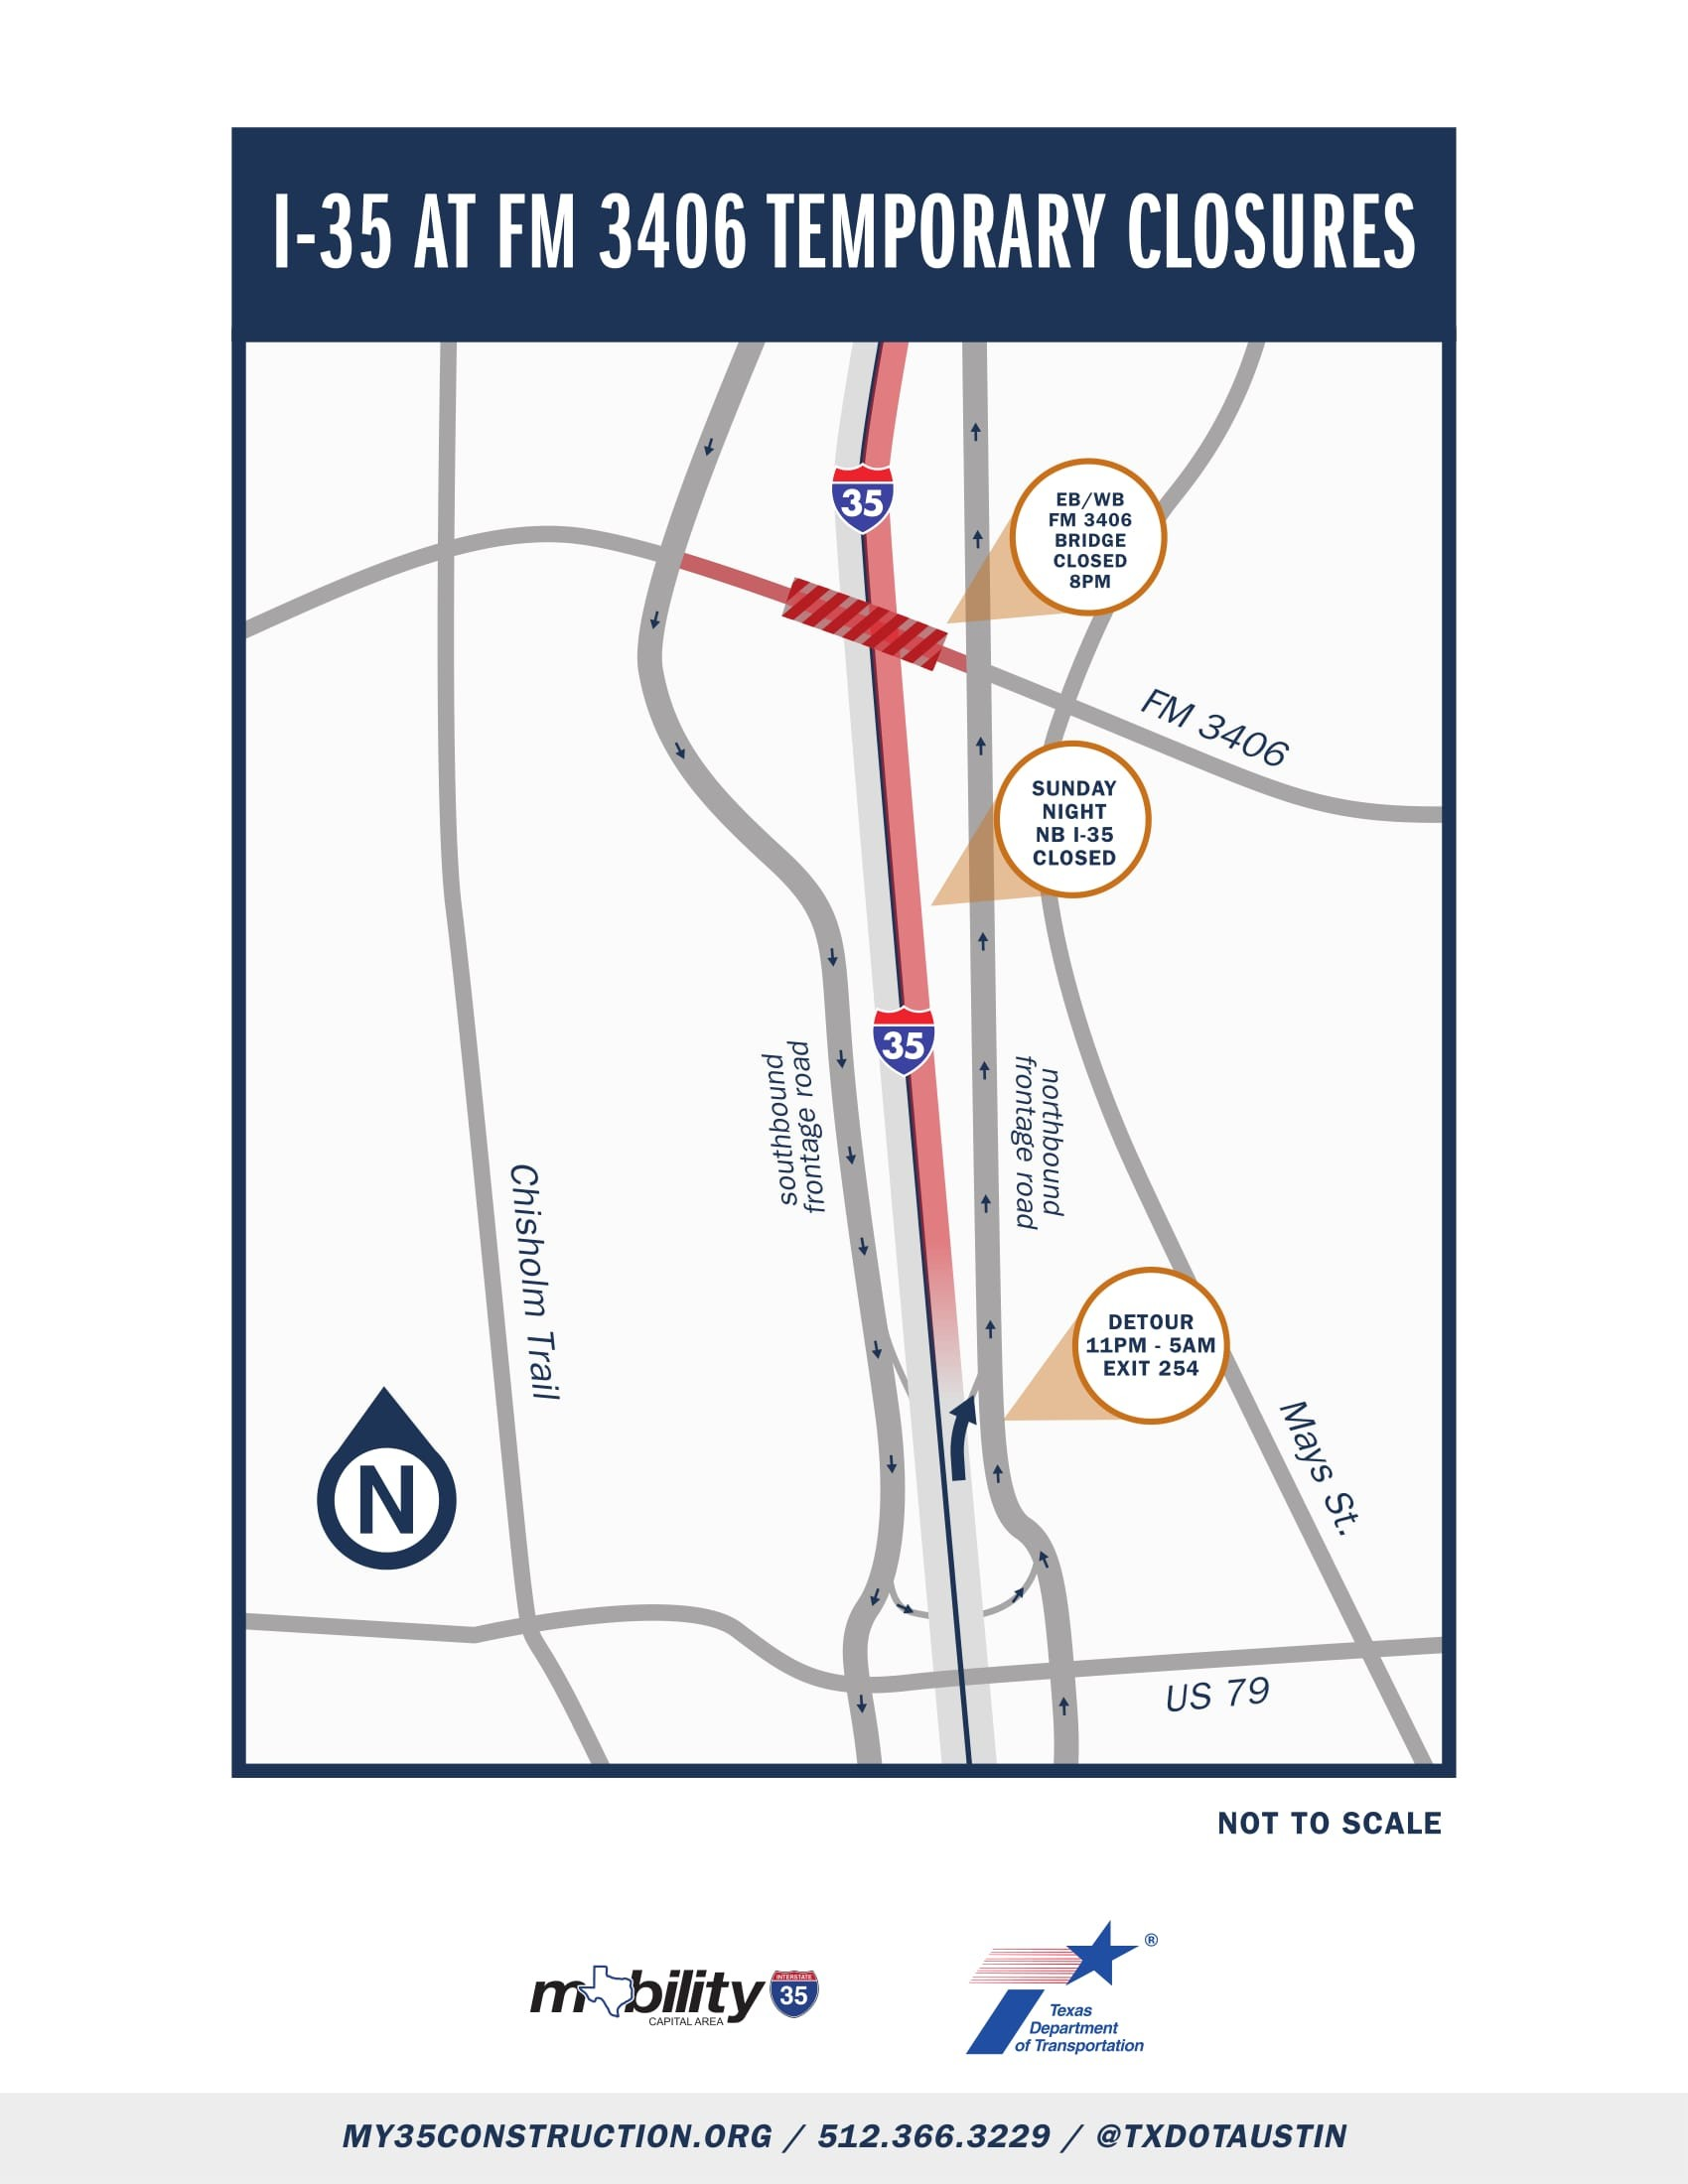 Northbound I-35 mainlanes will be closed and traffic detoured to the frontage roads at exit 254 beginning at 9 p.m., with full mainlane closures from 11 p.m. until 5 a.m., Sunday, Aug. 13 during construction of a U-Turn bridge.